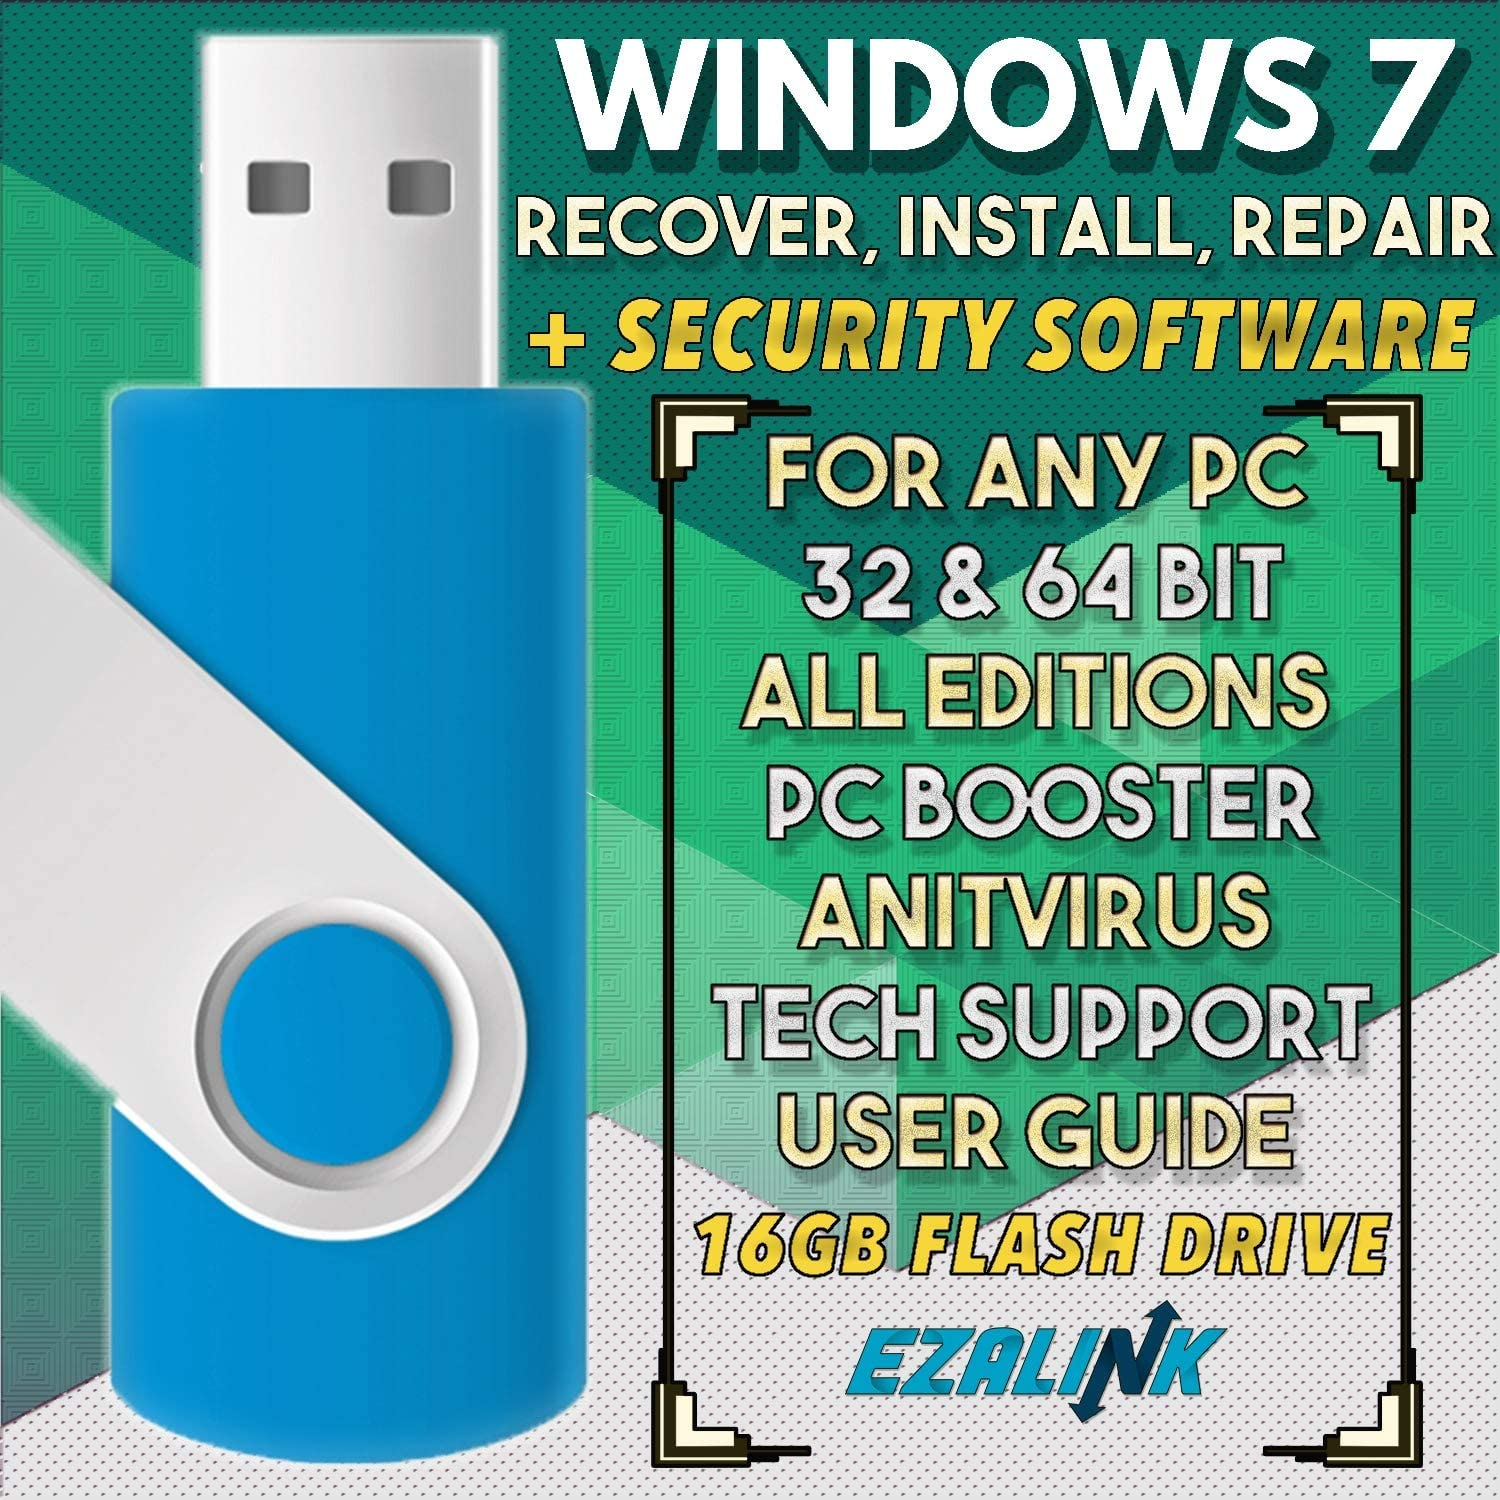 Ezalink USB for Windows 7 SP1 Repair Install Recovery Restore Boot Fix Flash Drive | 32 818QloC2nrL